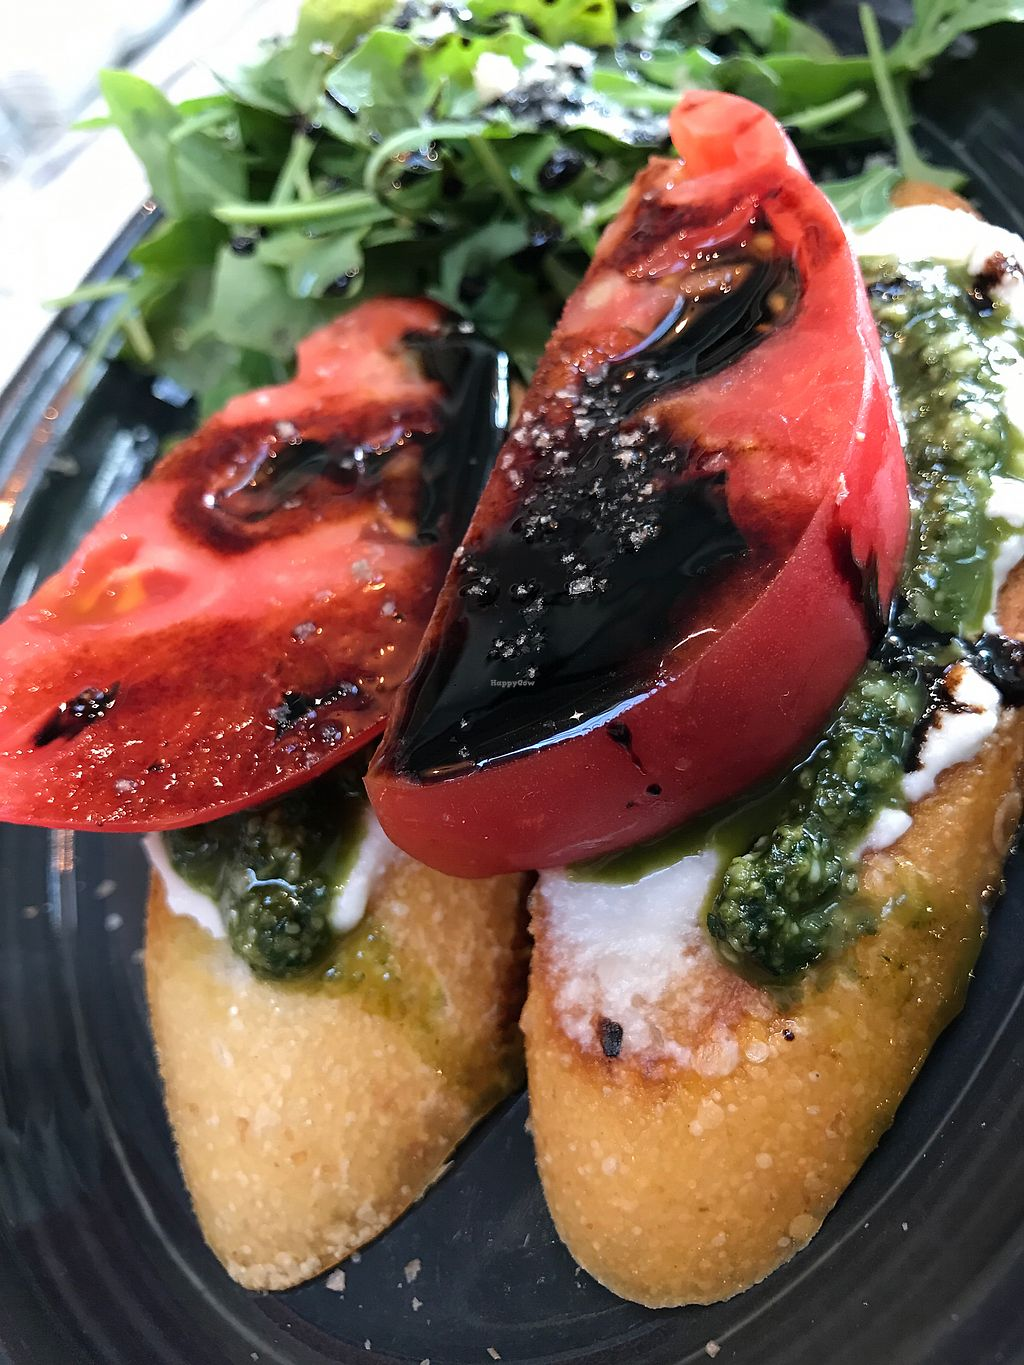 """Photo of Cafe Gratitude  by <a href=""""/members/profile/AndrewJohnHarrison"""">AndrewJohnHarrison</a> <br/>Bruschetta  <br/> September 6, 2017  - <a href='/contact/abuse/image/92756/301438'>Report</a>"""